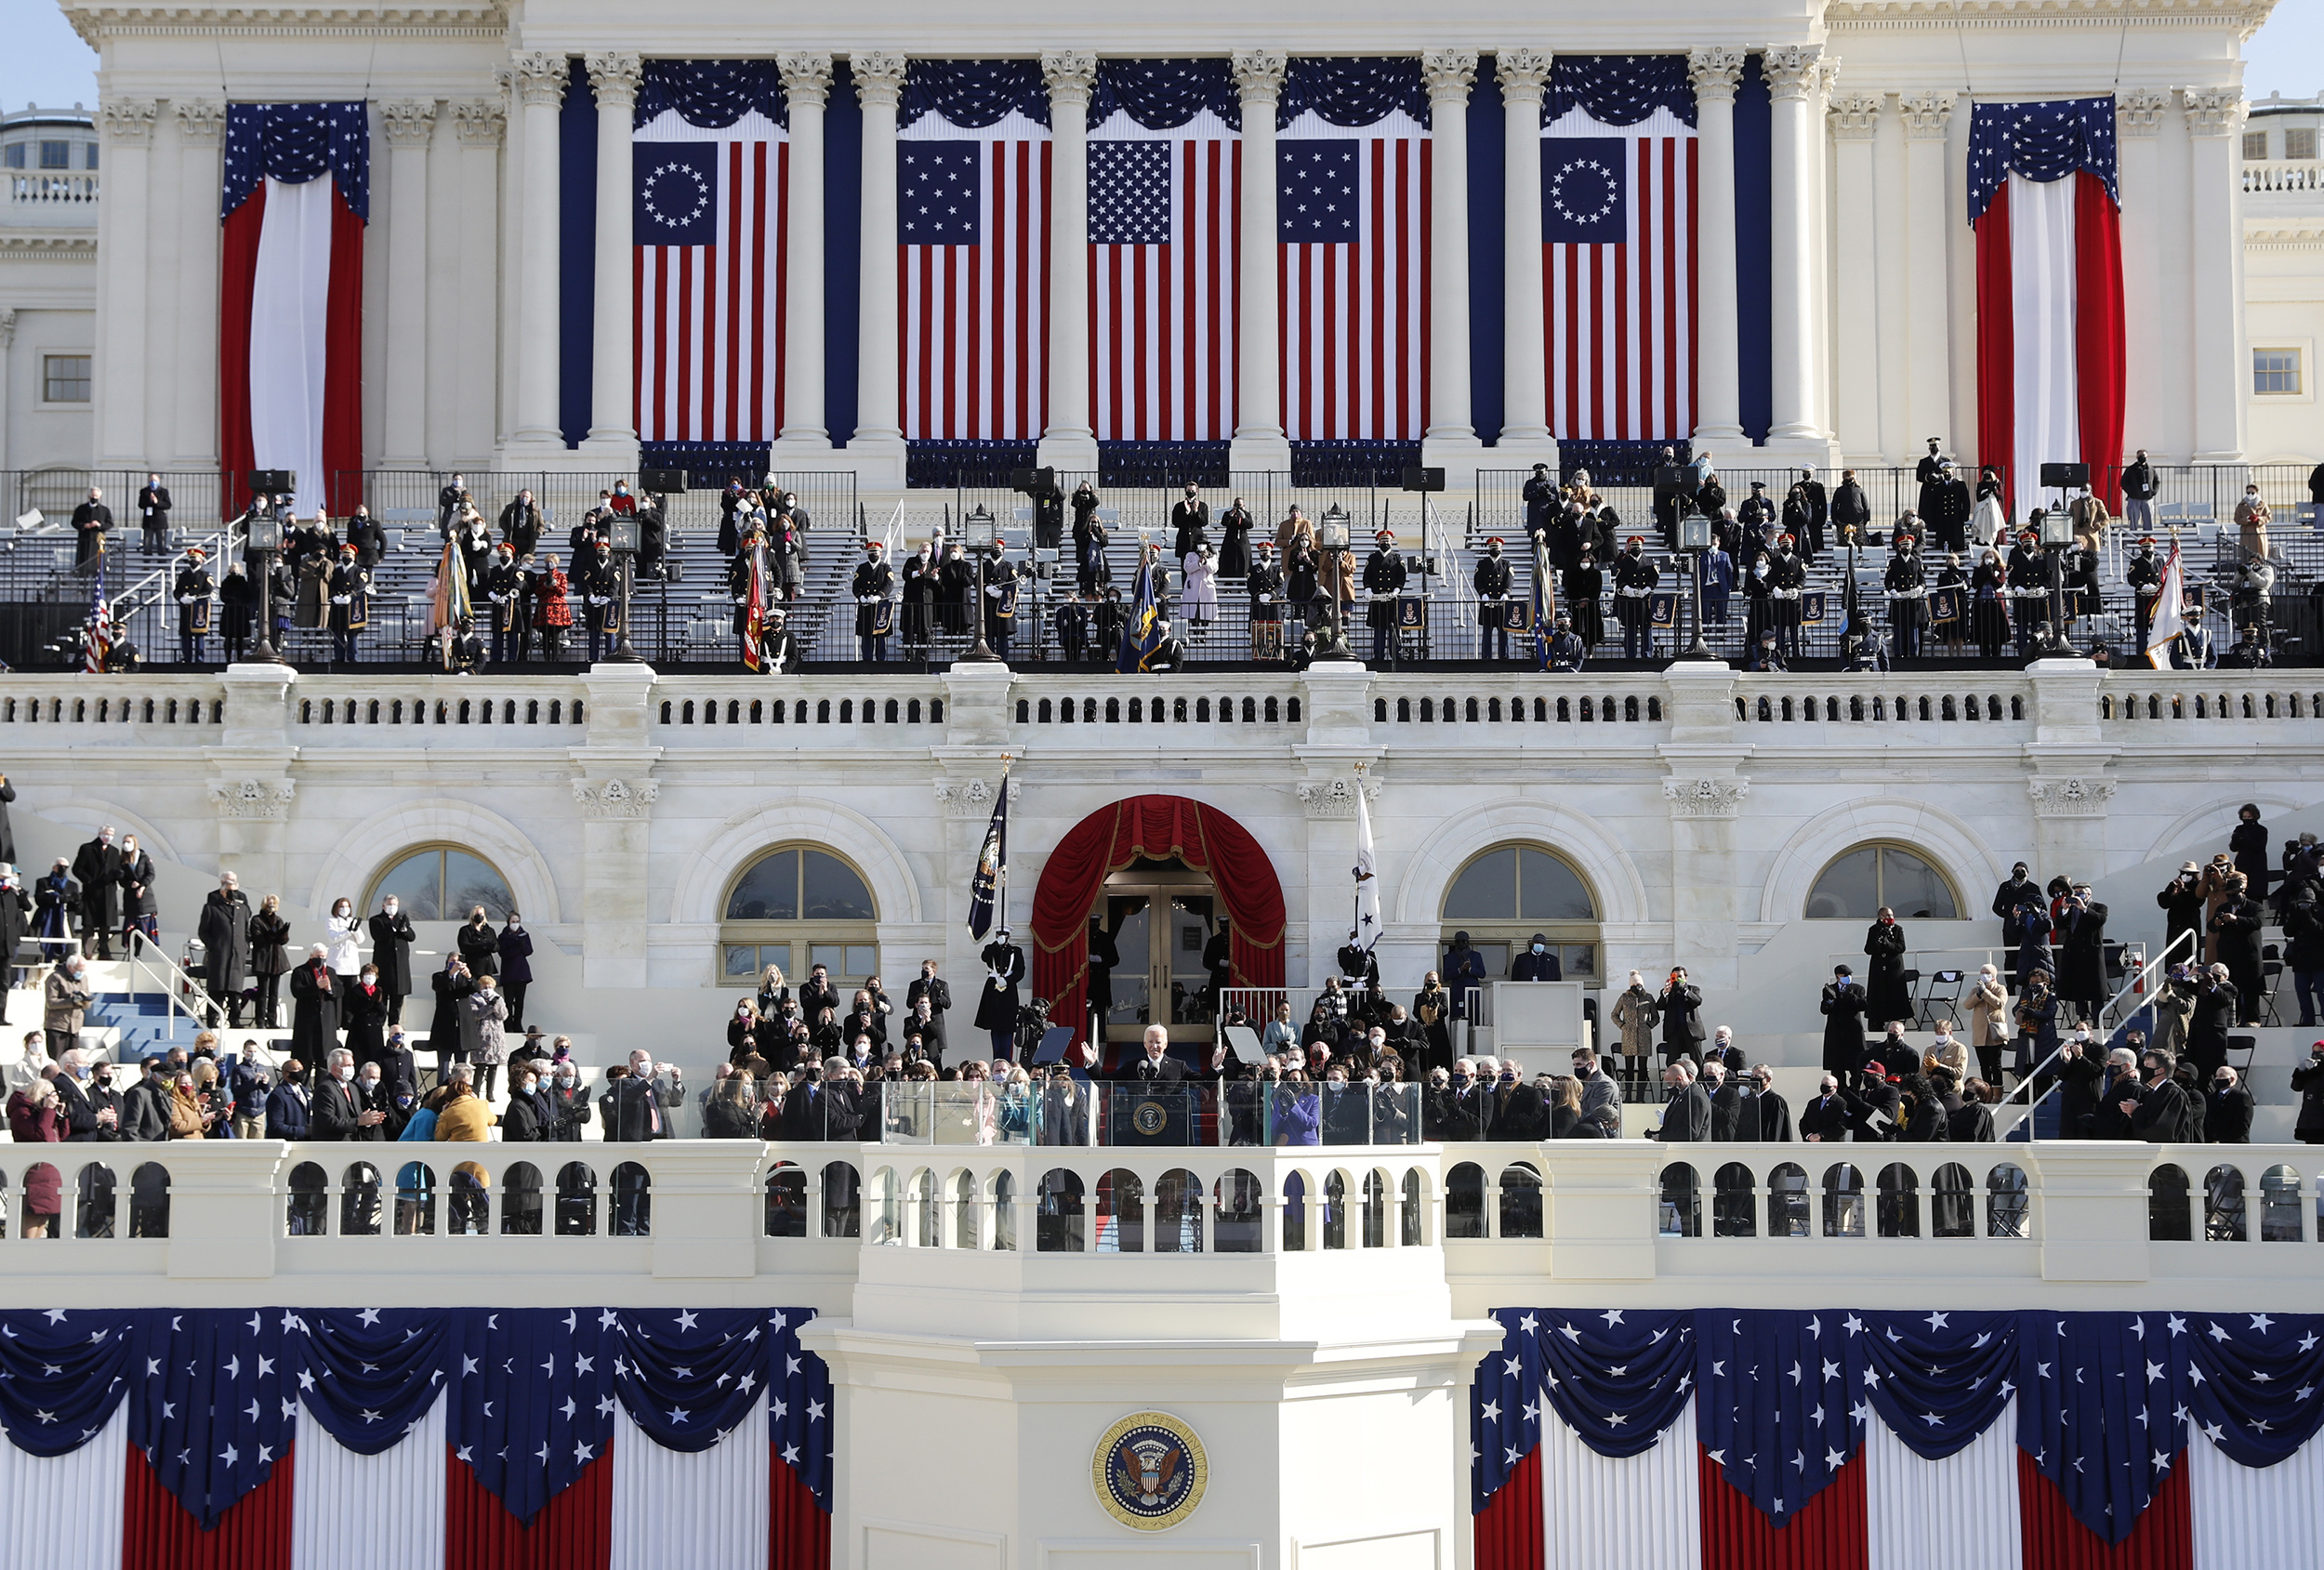 All Circumstance And Less Pomp Biden Inauguration Strikes A Somber Tone